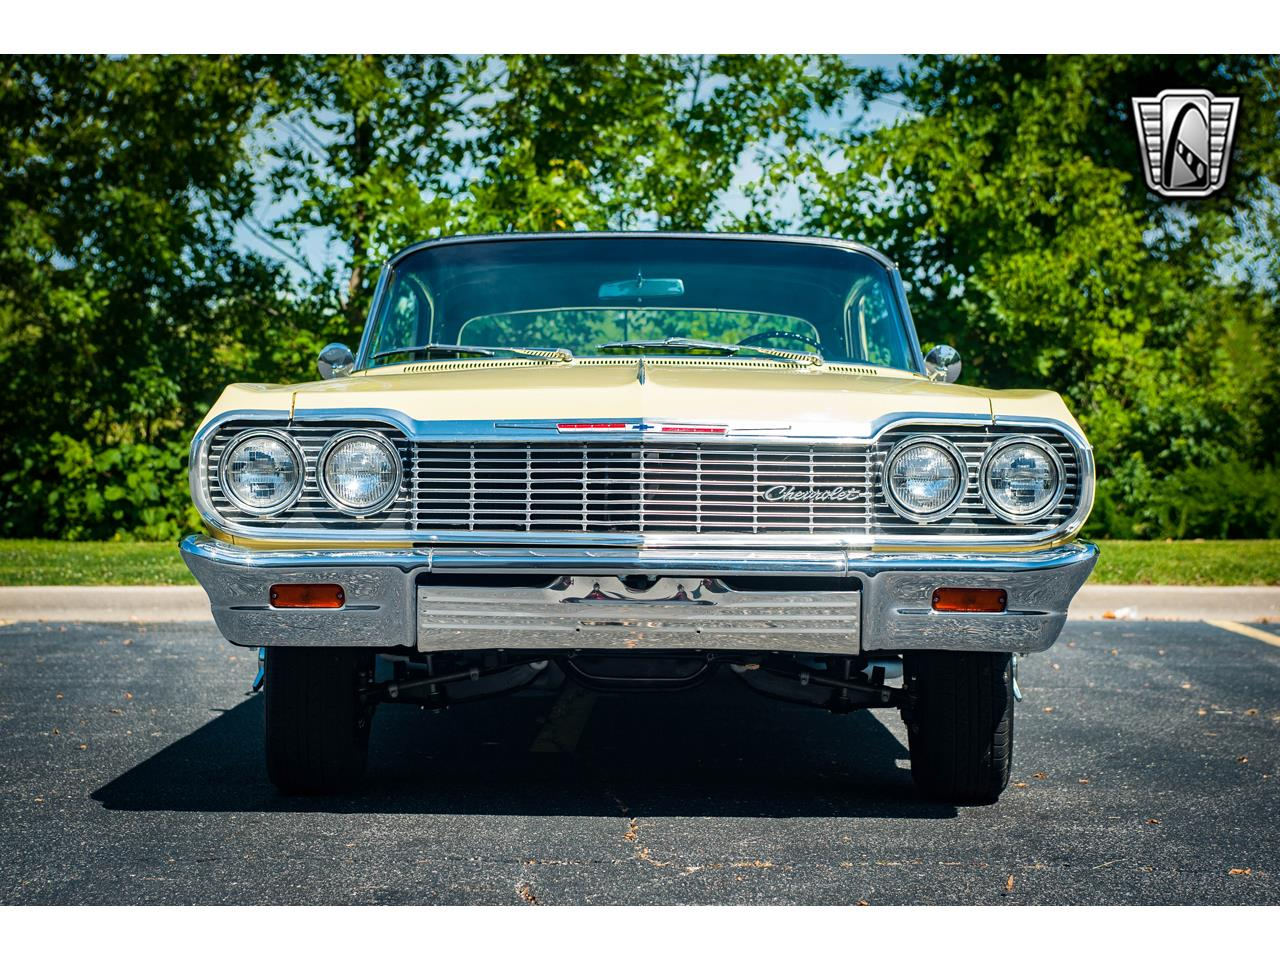 Large Picture of 1964 Impala located in Illinois - $45,000.00 Offered by Gateway Classic Cars - St. Louis - QRDR